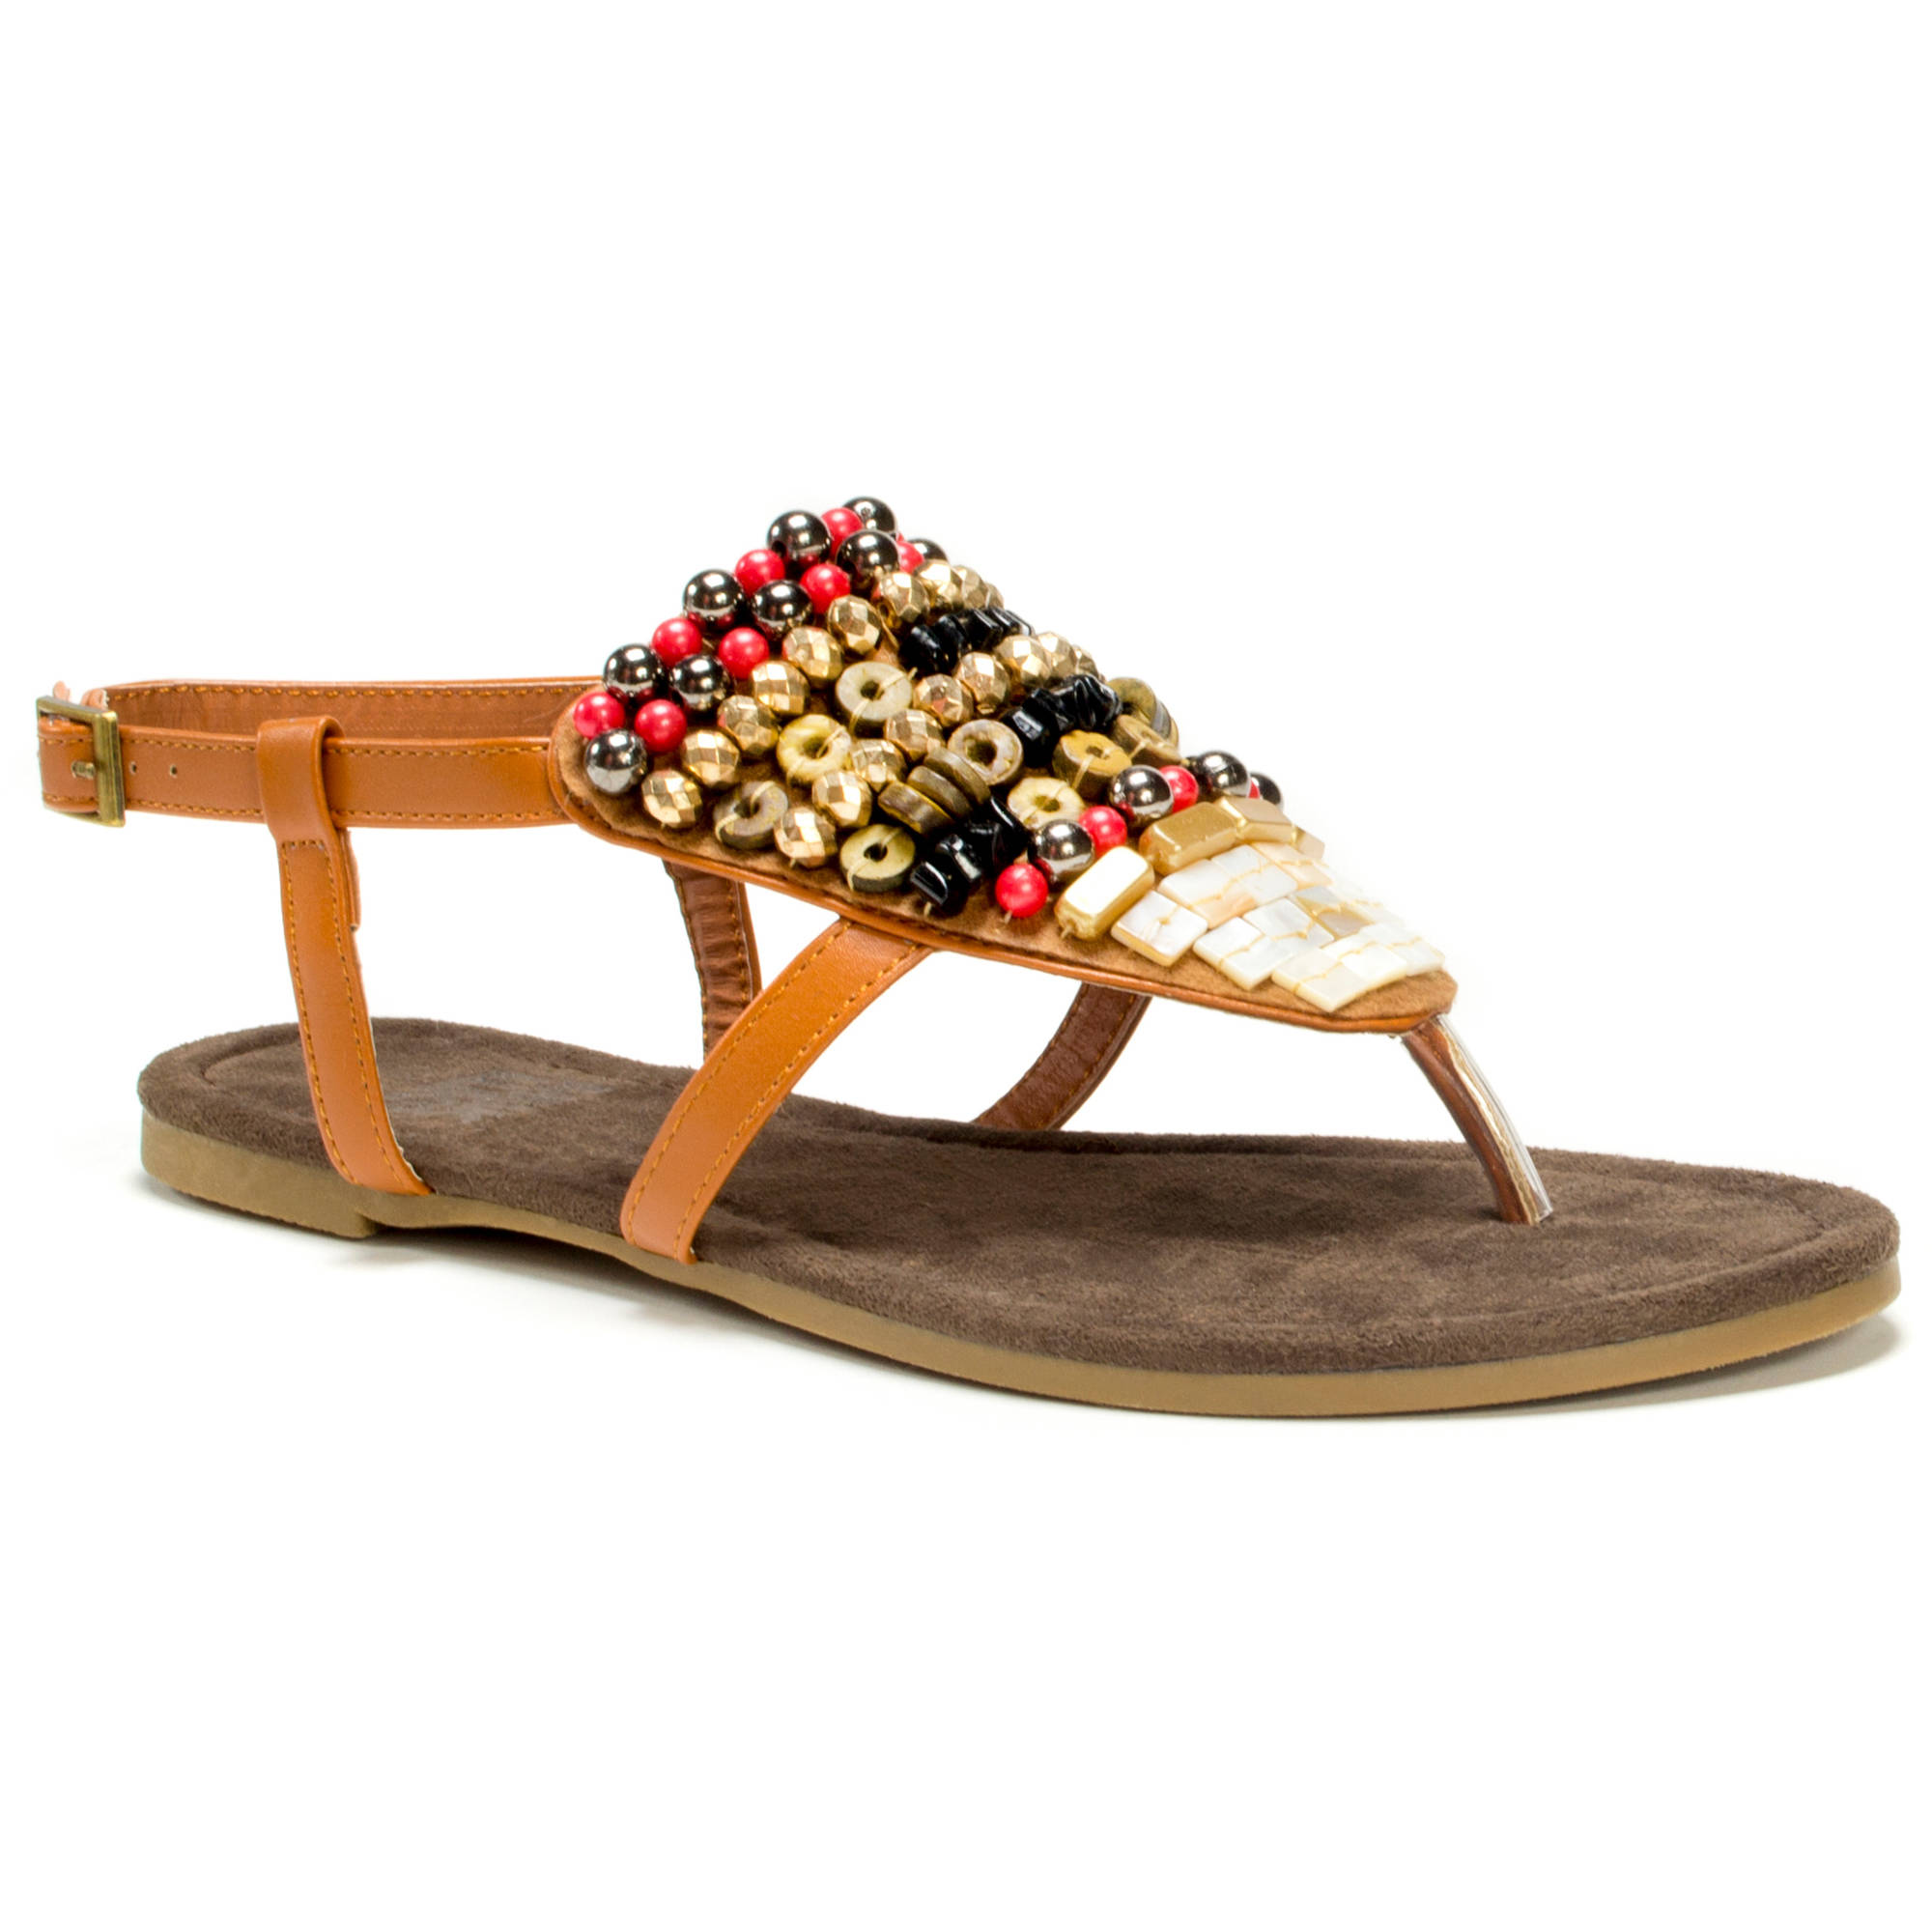 MUK LUKS Women's Harlow Beaded Sandals